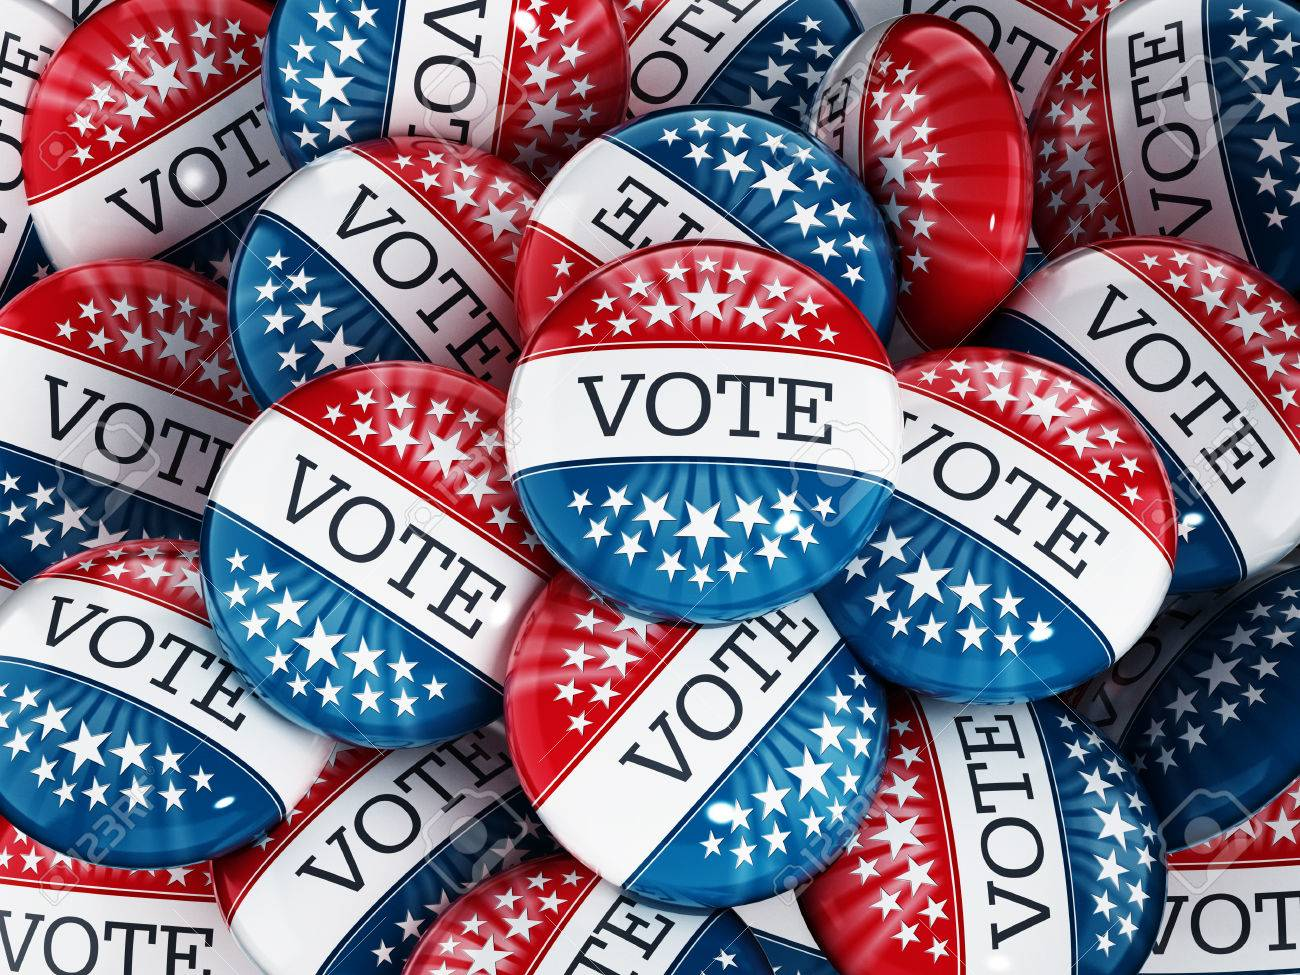 Vote buttons stack with red and blue colors Stock Photo - 39498728